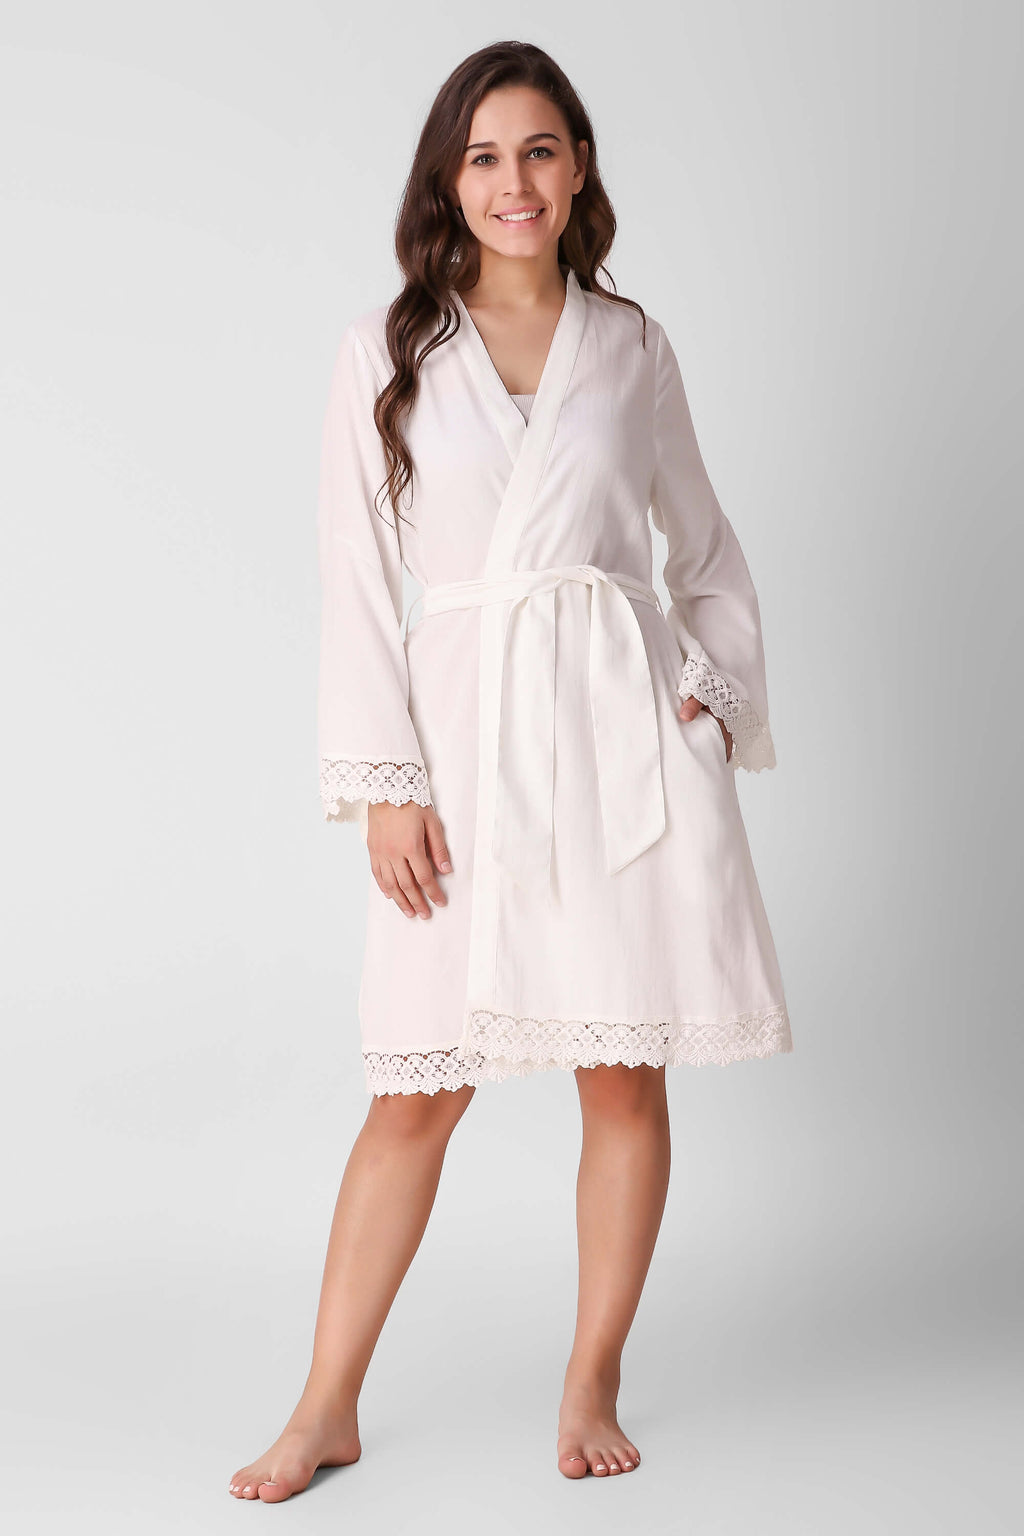 CMR, NightGown/Robe